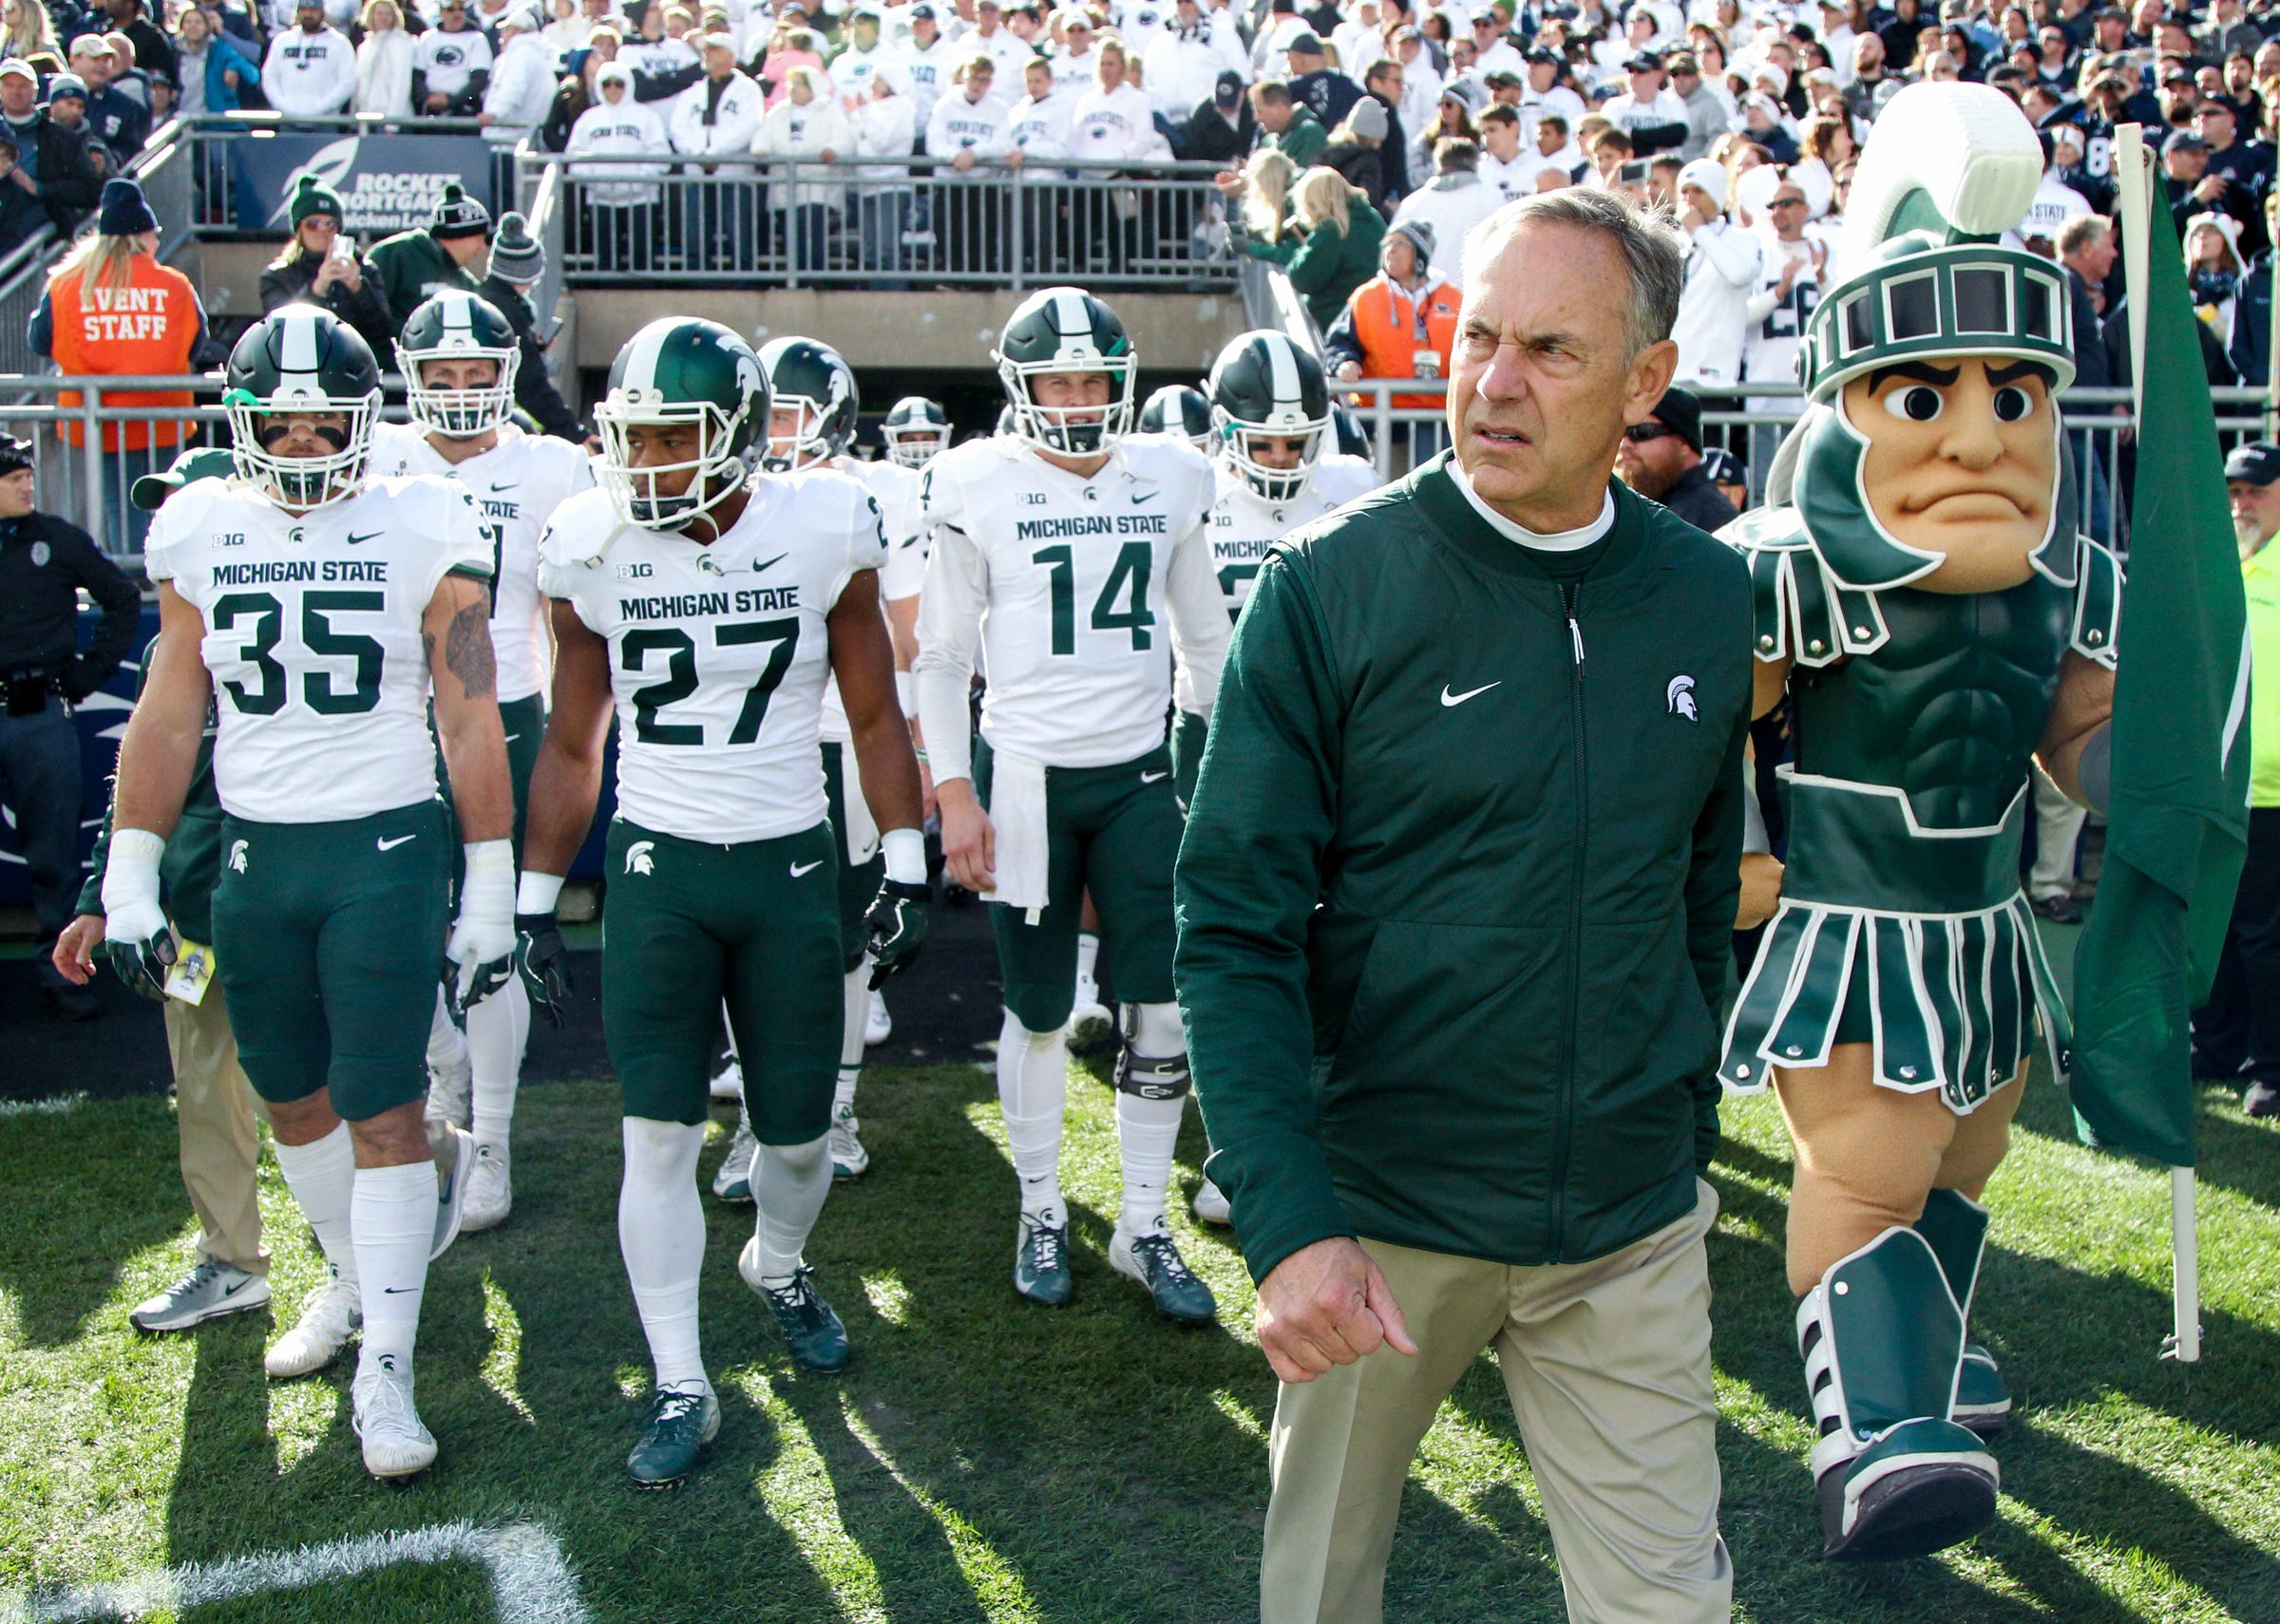 Michigan State coach Mark Dantonio leads his team onto the field prior to the game on Saturday, Oct. 13, 2018, in University Park, Pa.